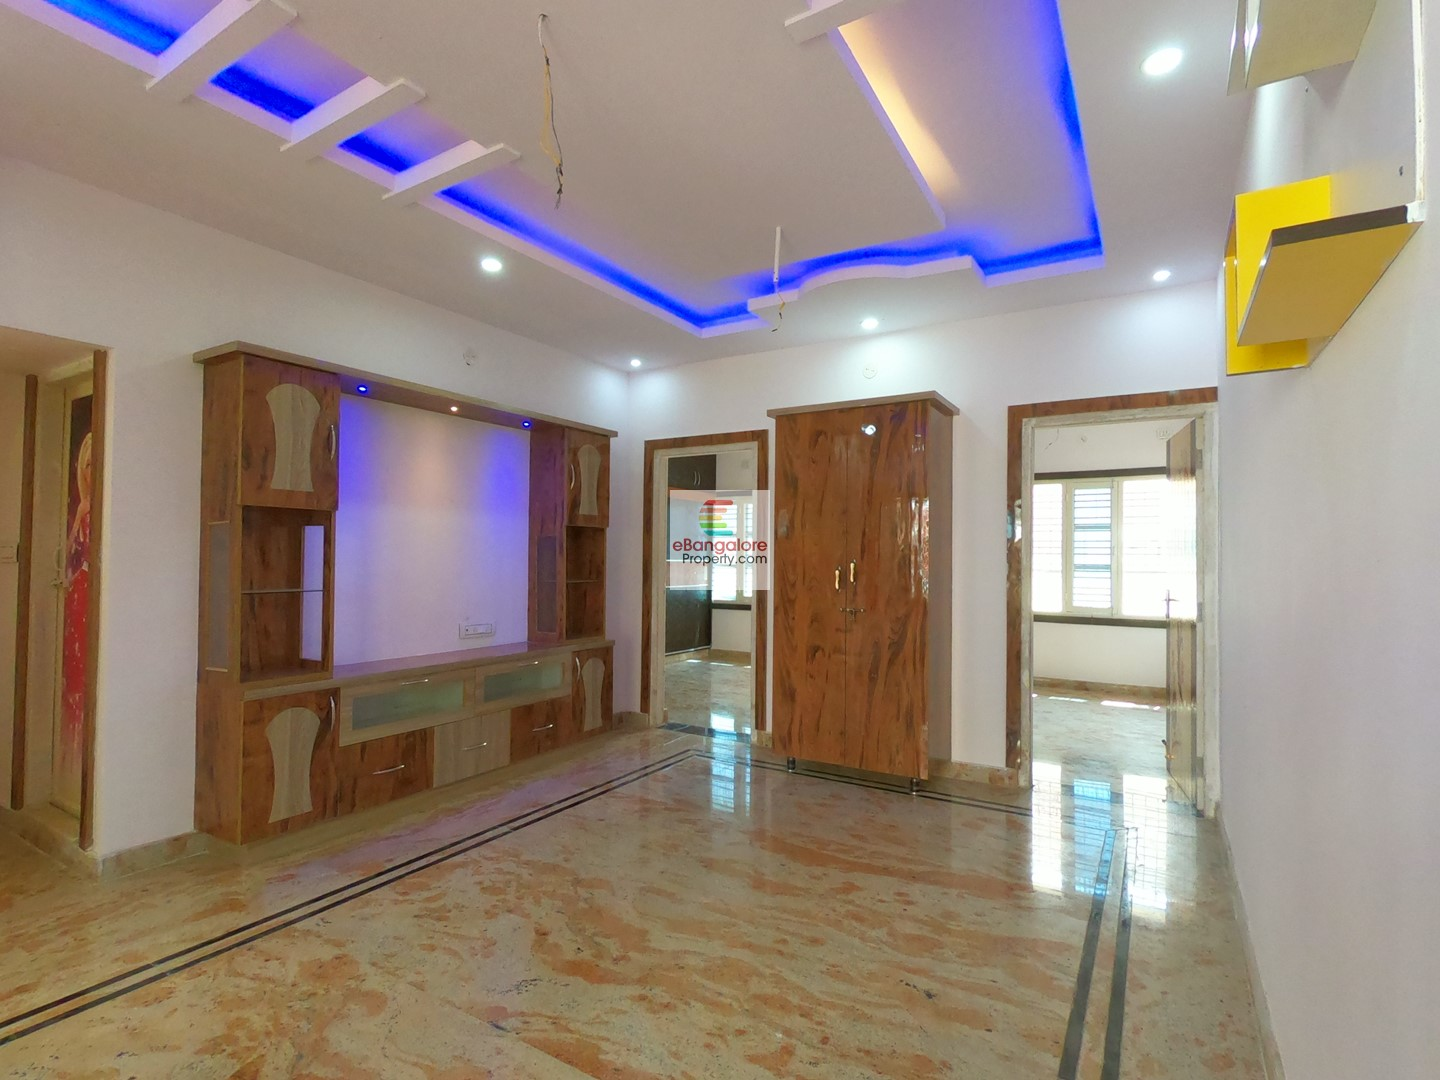 Ramamurthy Nagar – 1BHK+2BHK Brand New House for sale in 20×40 – Nr Reliance Fresh